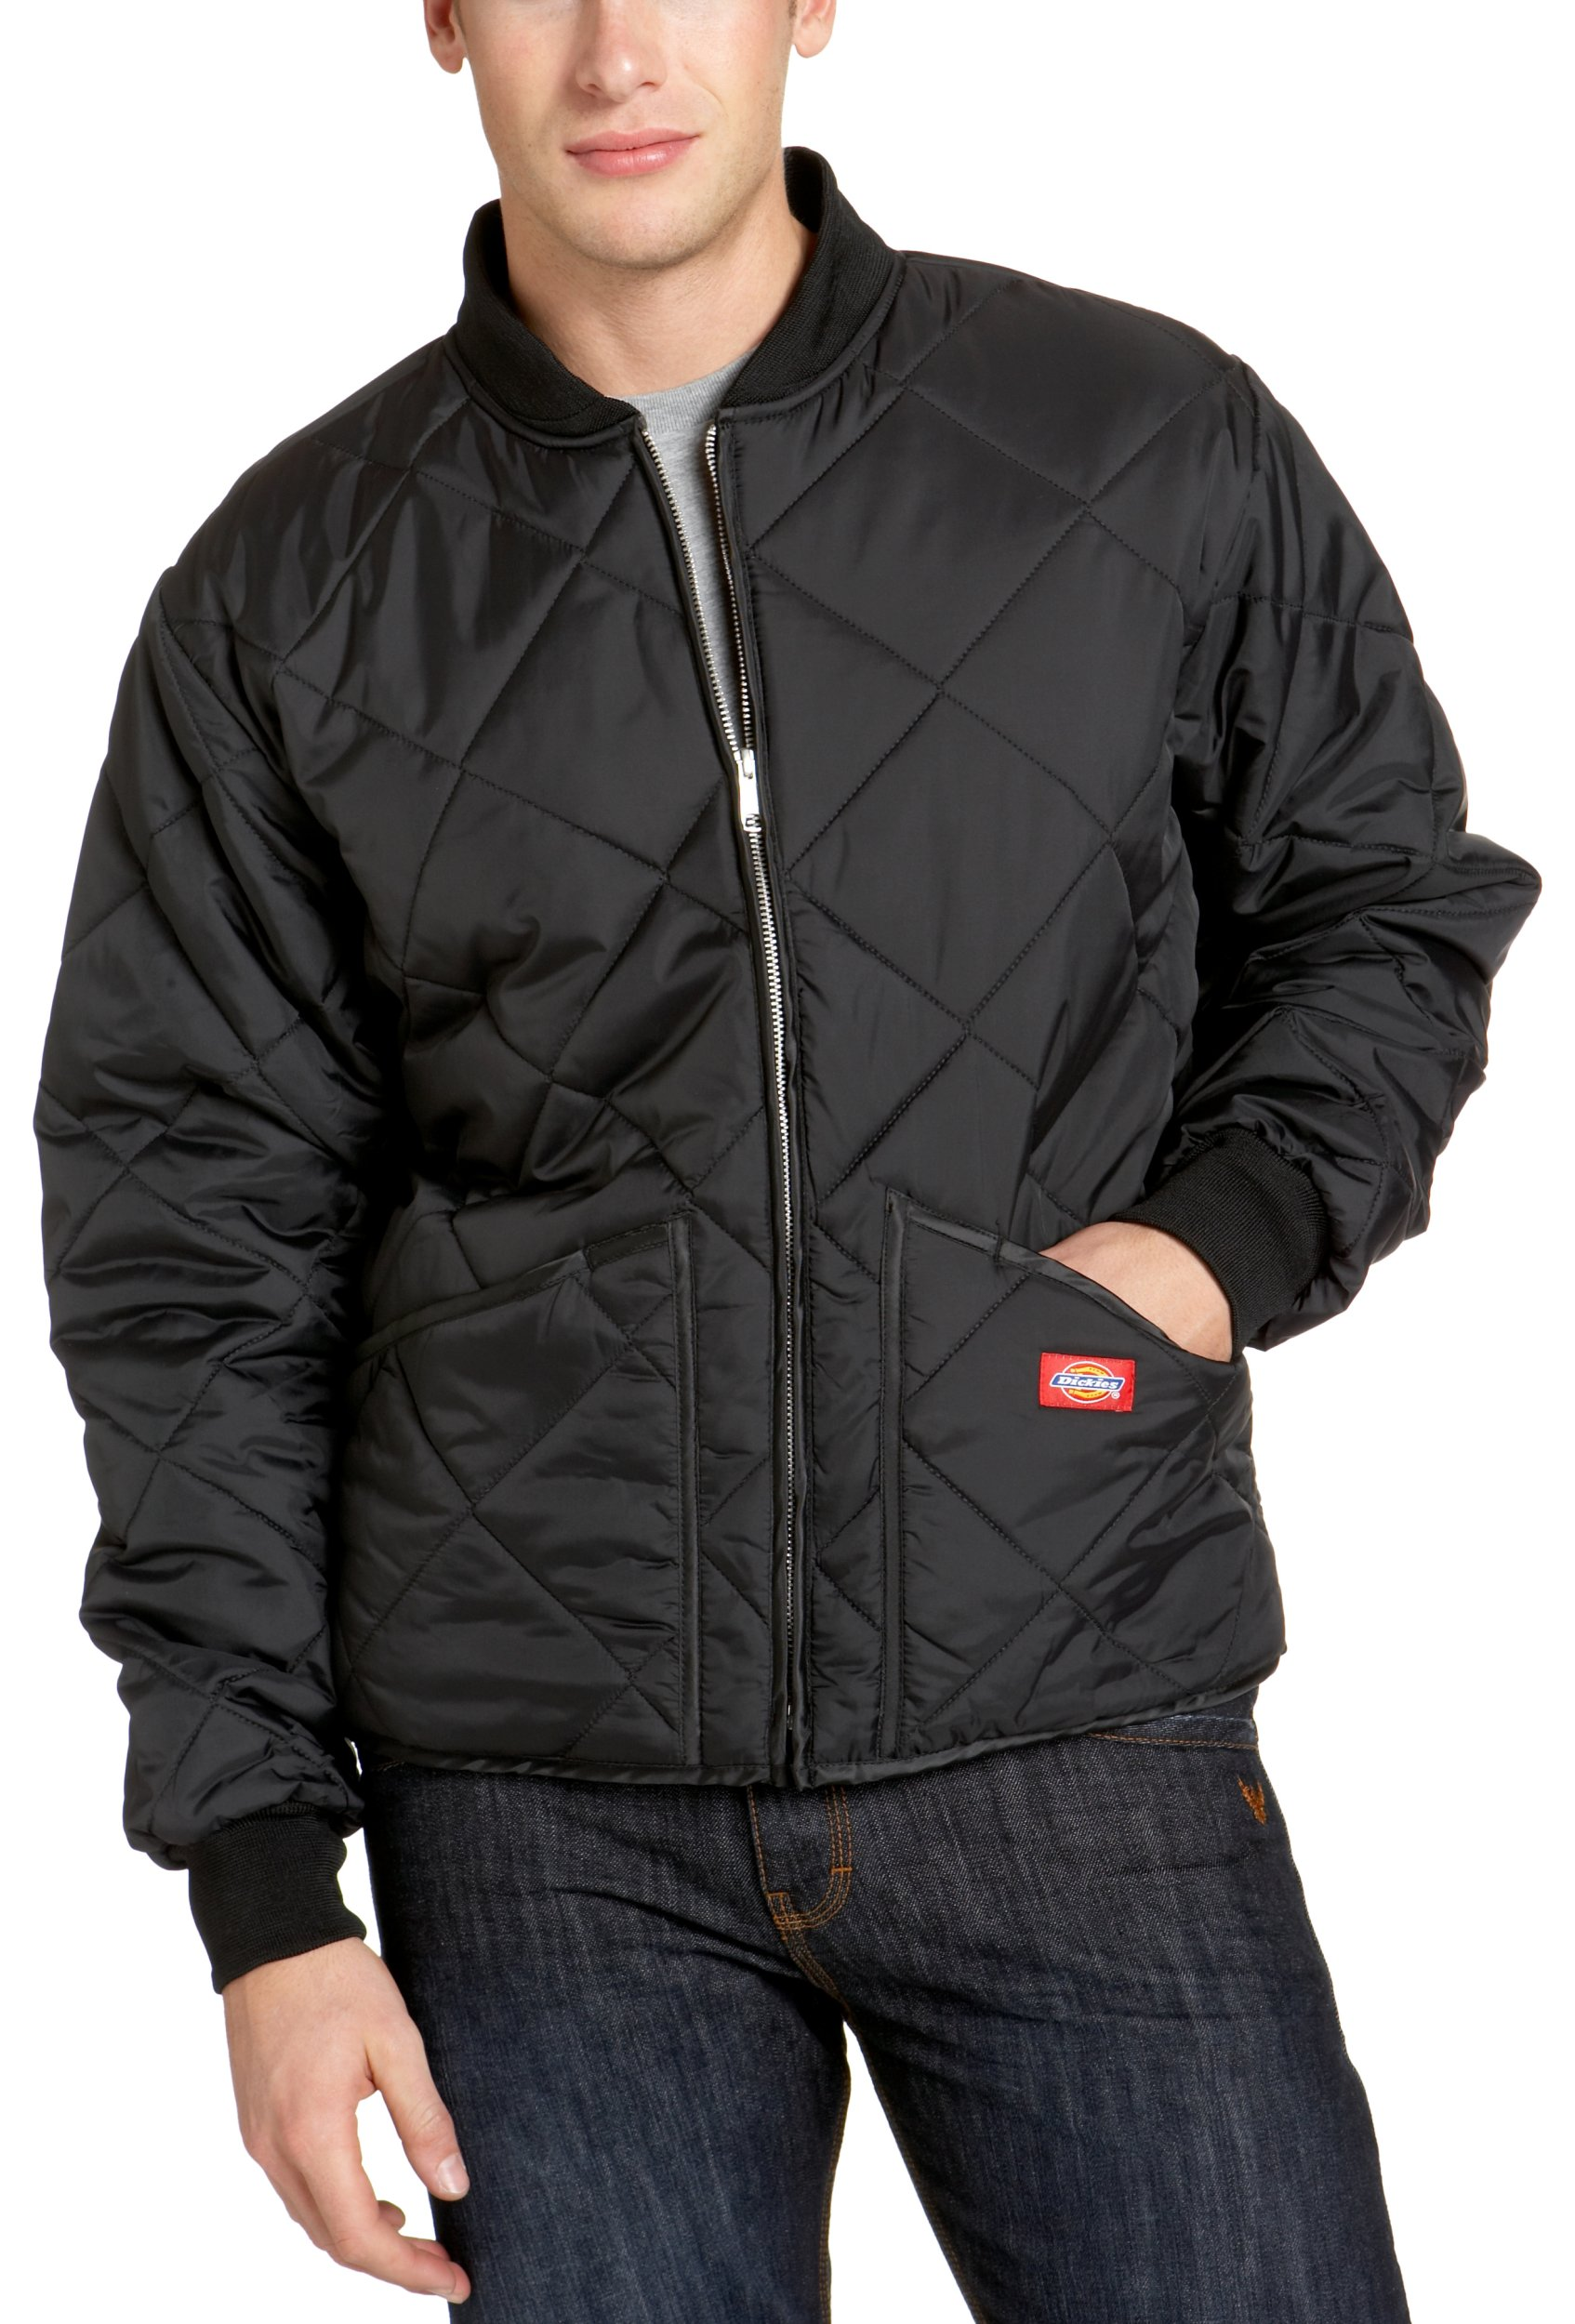 Dickies Men's Big-Tall Diamond Quilted Nylon Jacket, Black, 4XL by dickies